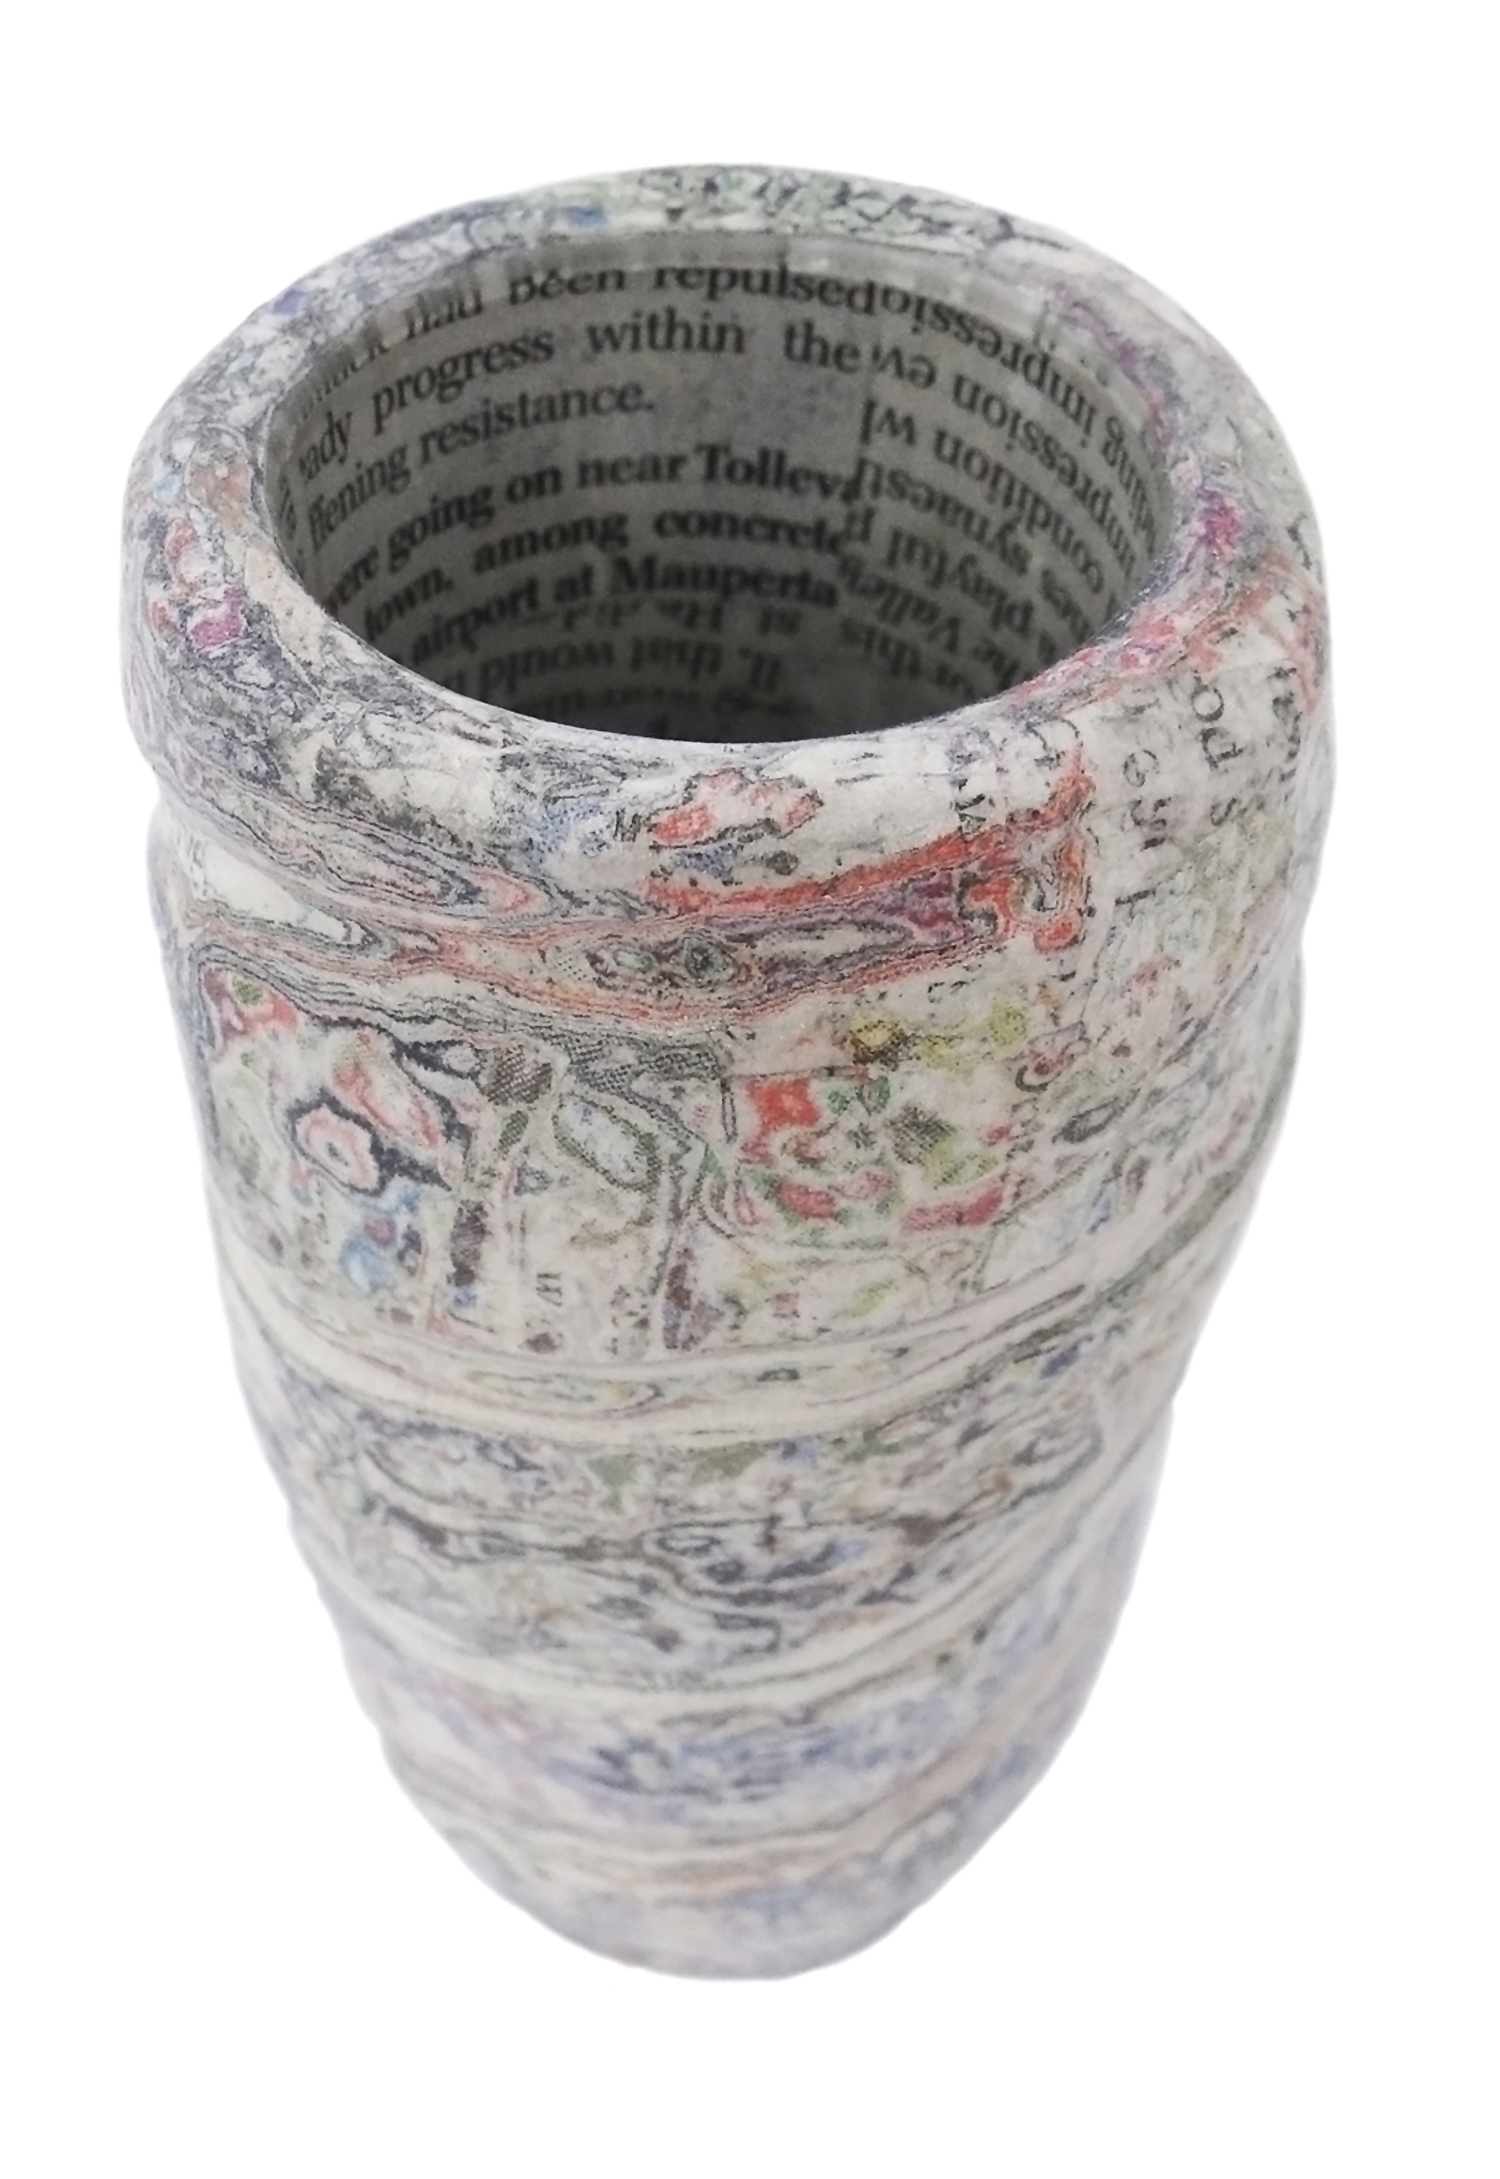 carved newspaper and glass vase by Dani Crompton designs